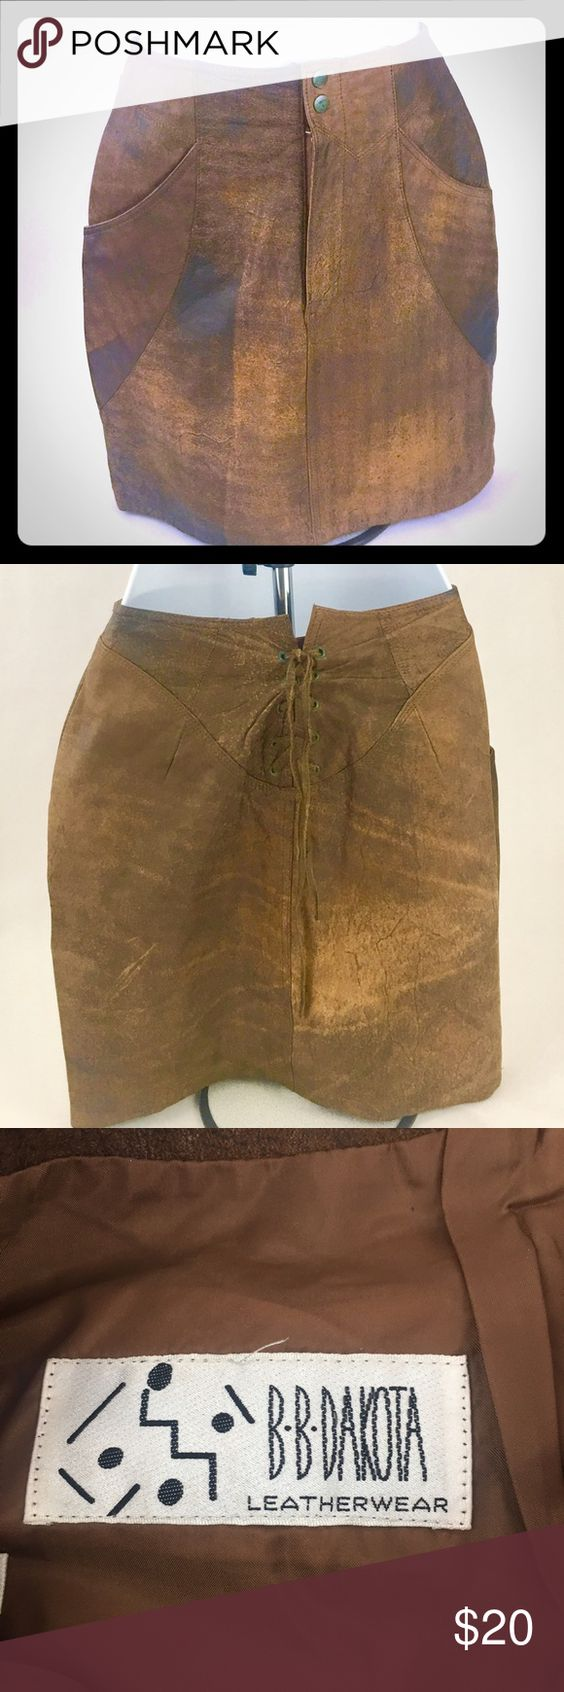 "BB Dakota Leatherware Brown Mini Skirt Size 5/6 This is a BB Dakota Brown Leather Mini Skirt with lace up detail in the back. This skirt is in great condition, great addition to your closet! Length 17"", Waist 12.5"", Hips 16.5"". Thanks for shopping my closet! BB Dakota Skirts Mini"